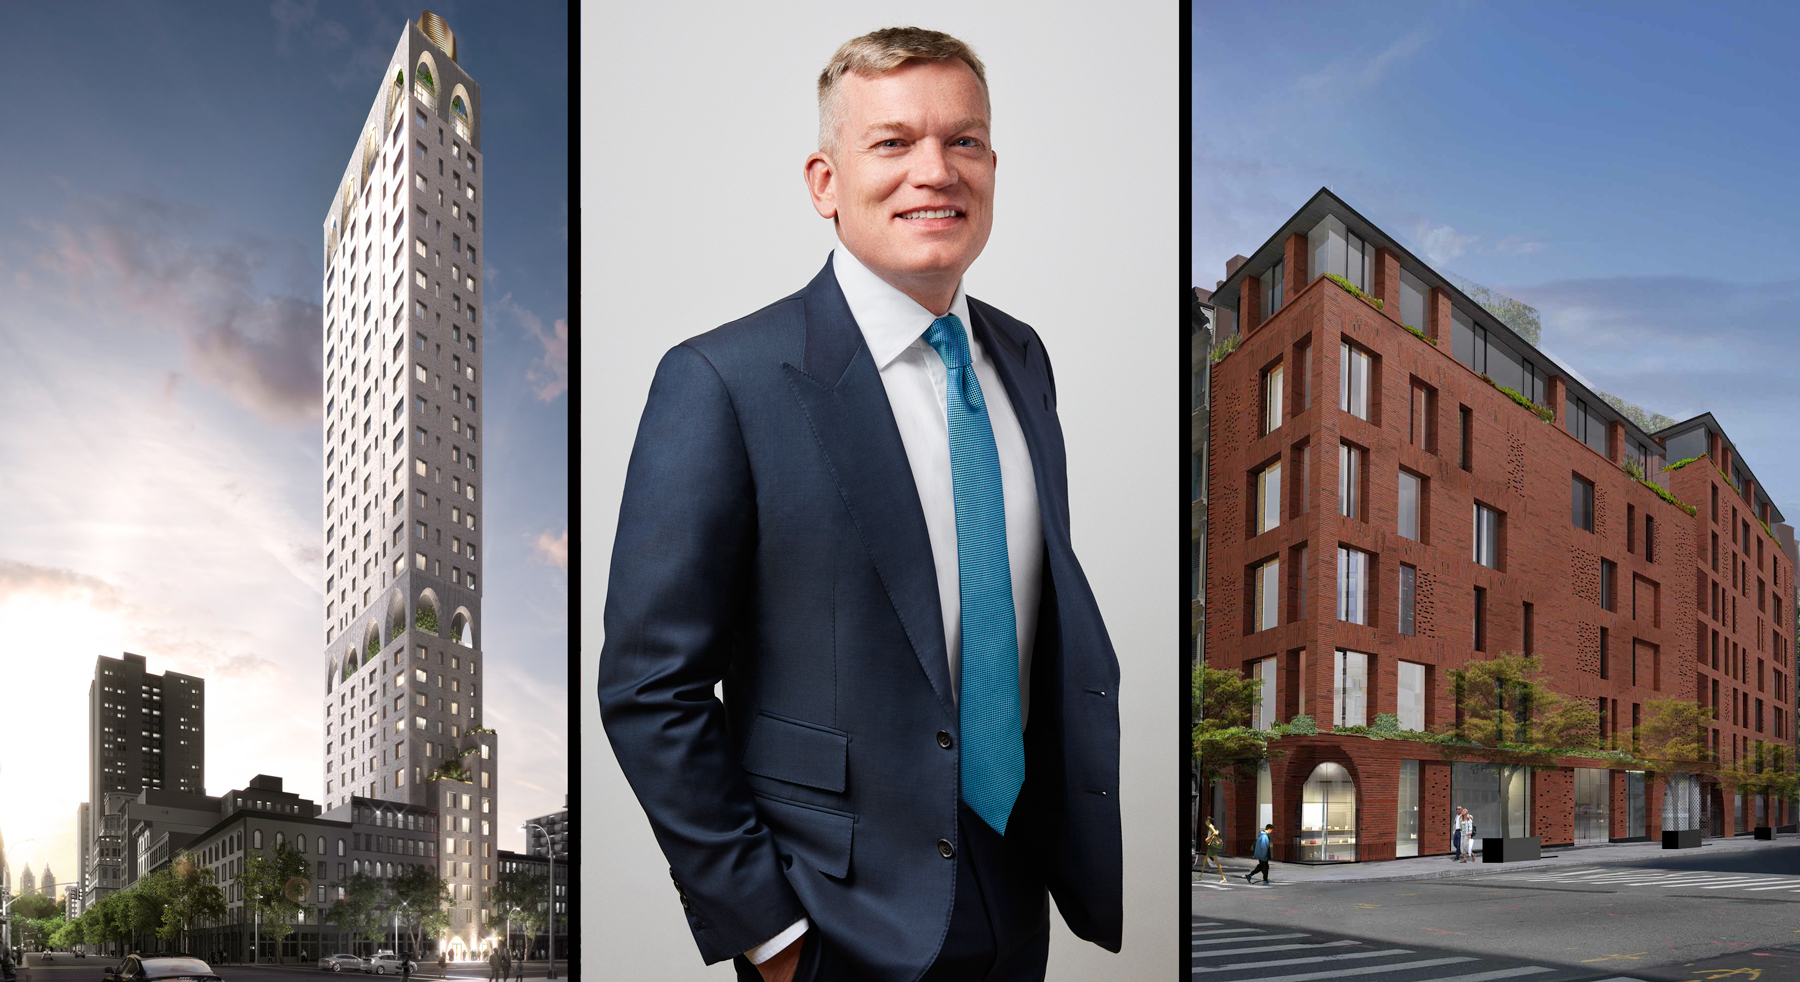 DDG's Joe McMillan with 180 East 88th Street at left and 100 Franklin Street at right